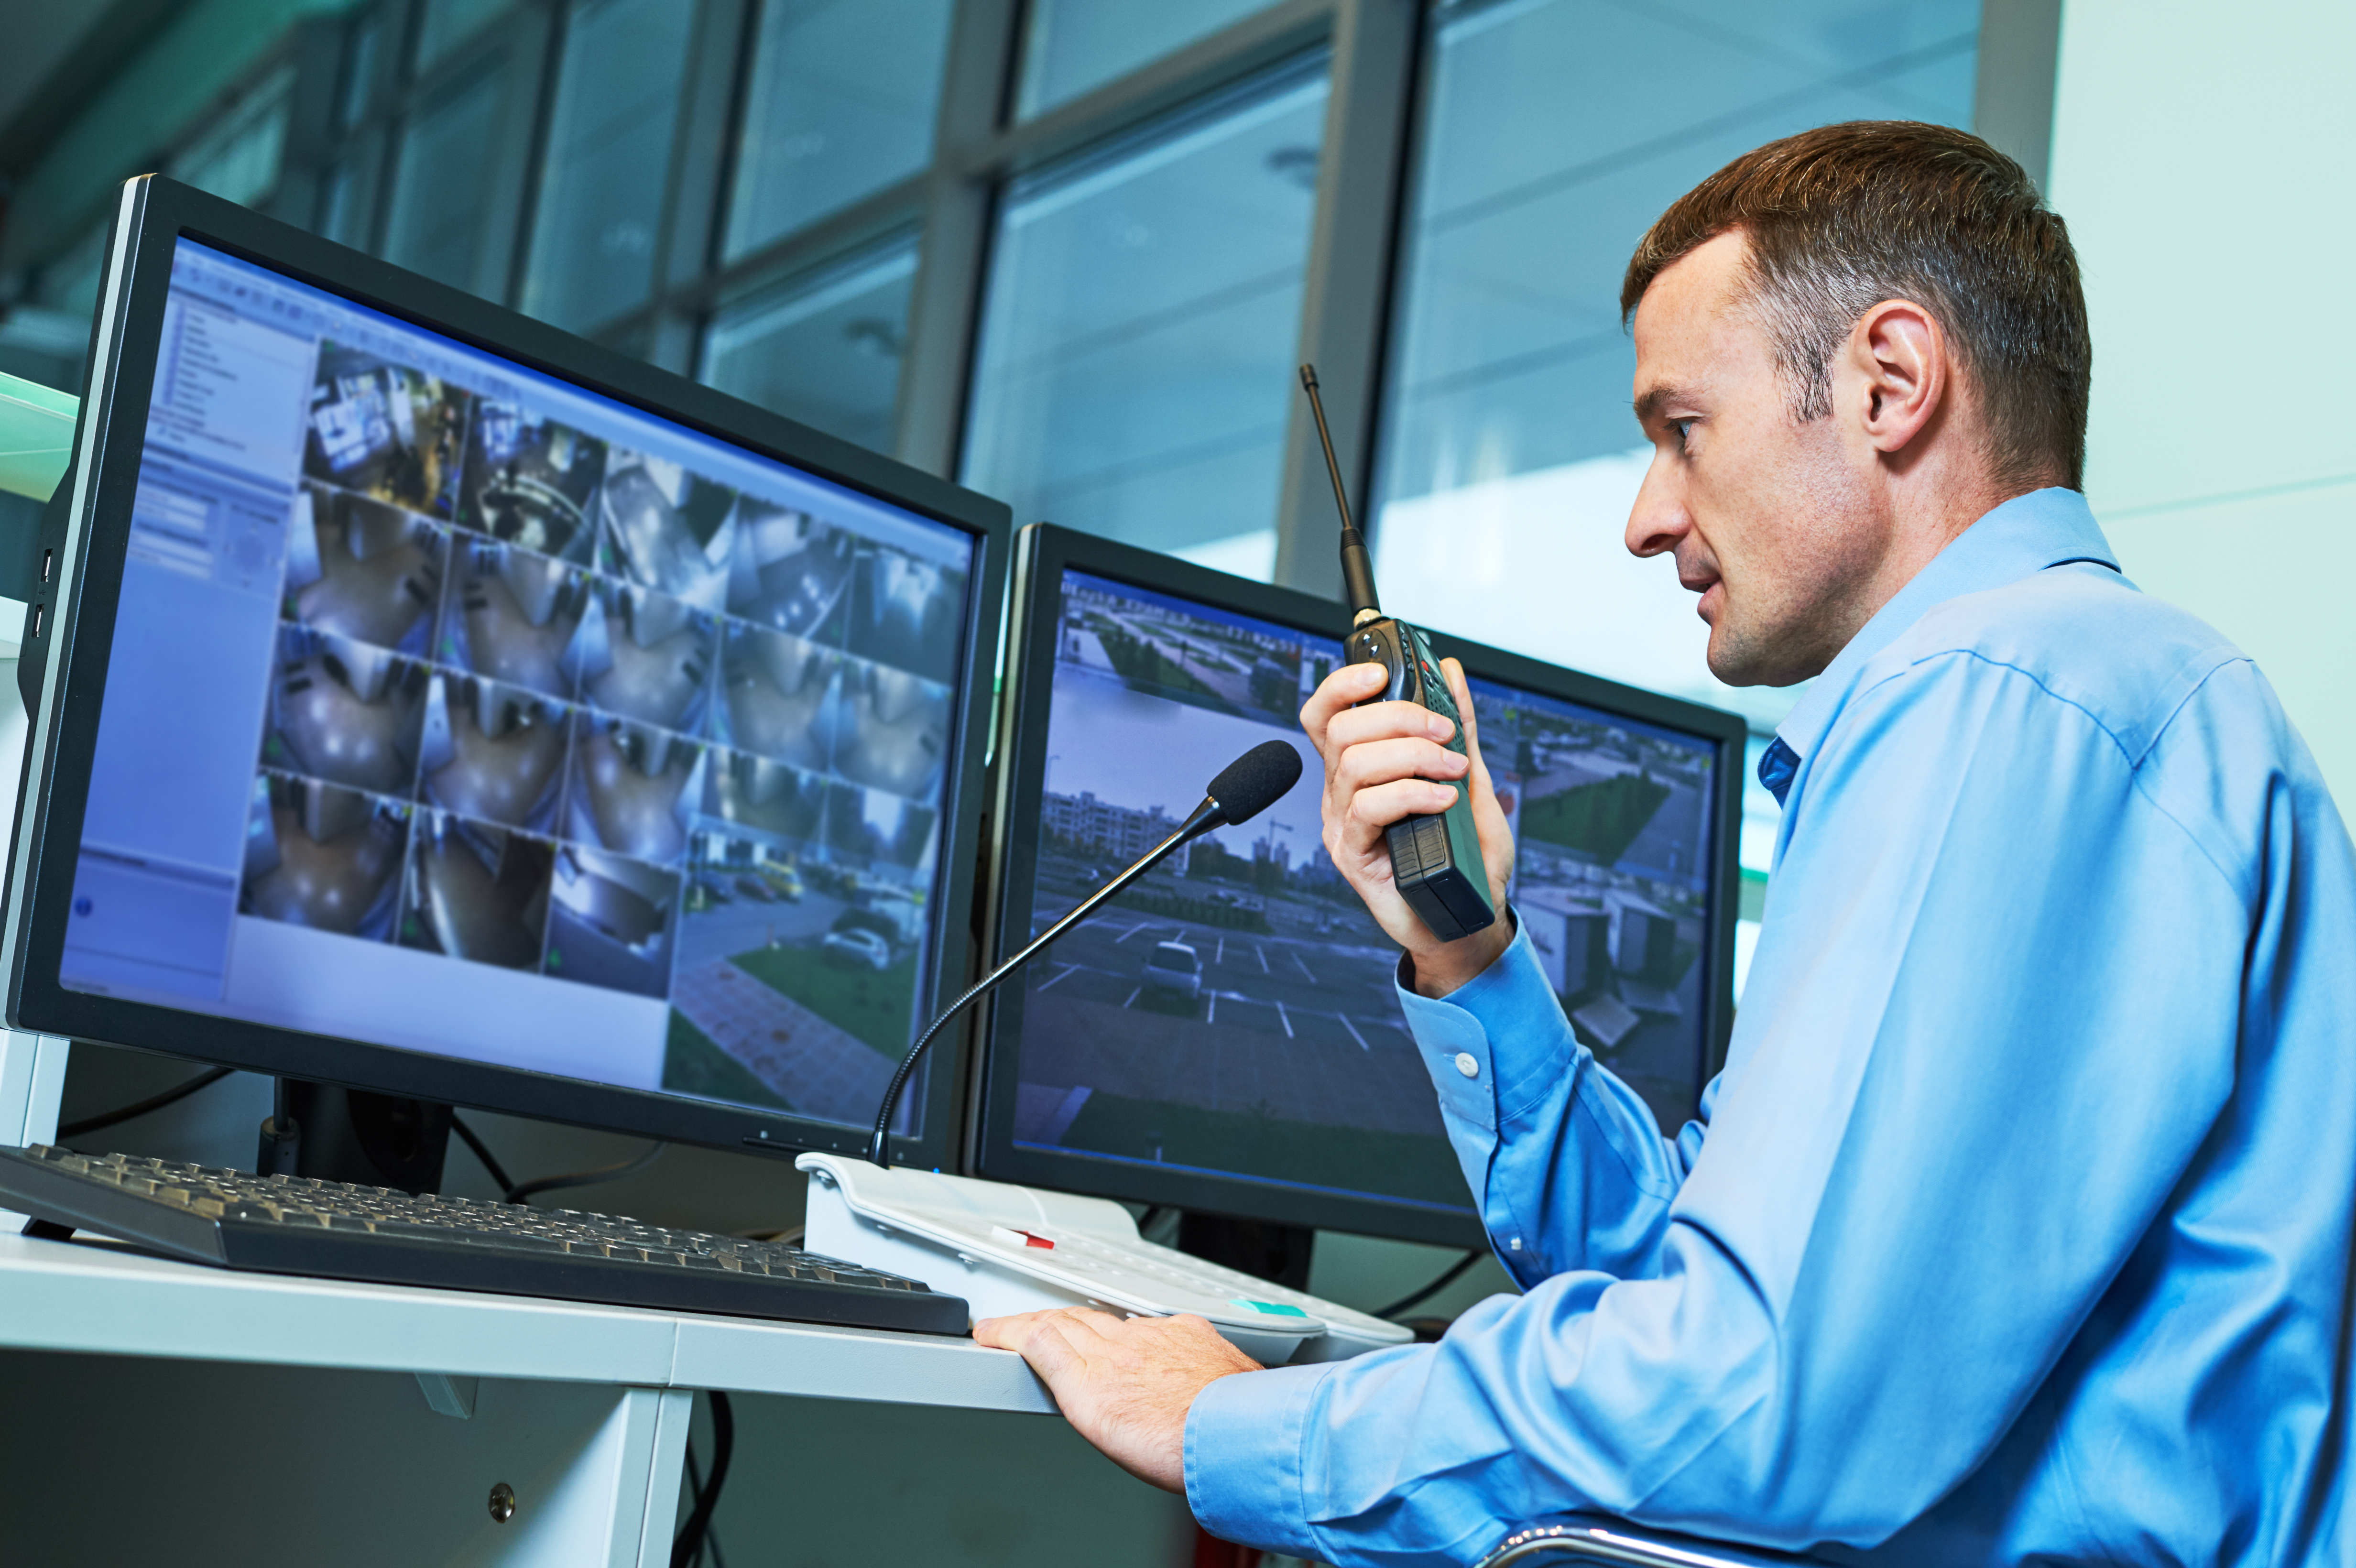 Security worker during monitoring.jpg Video surveillance system